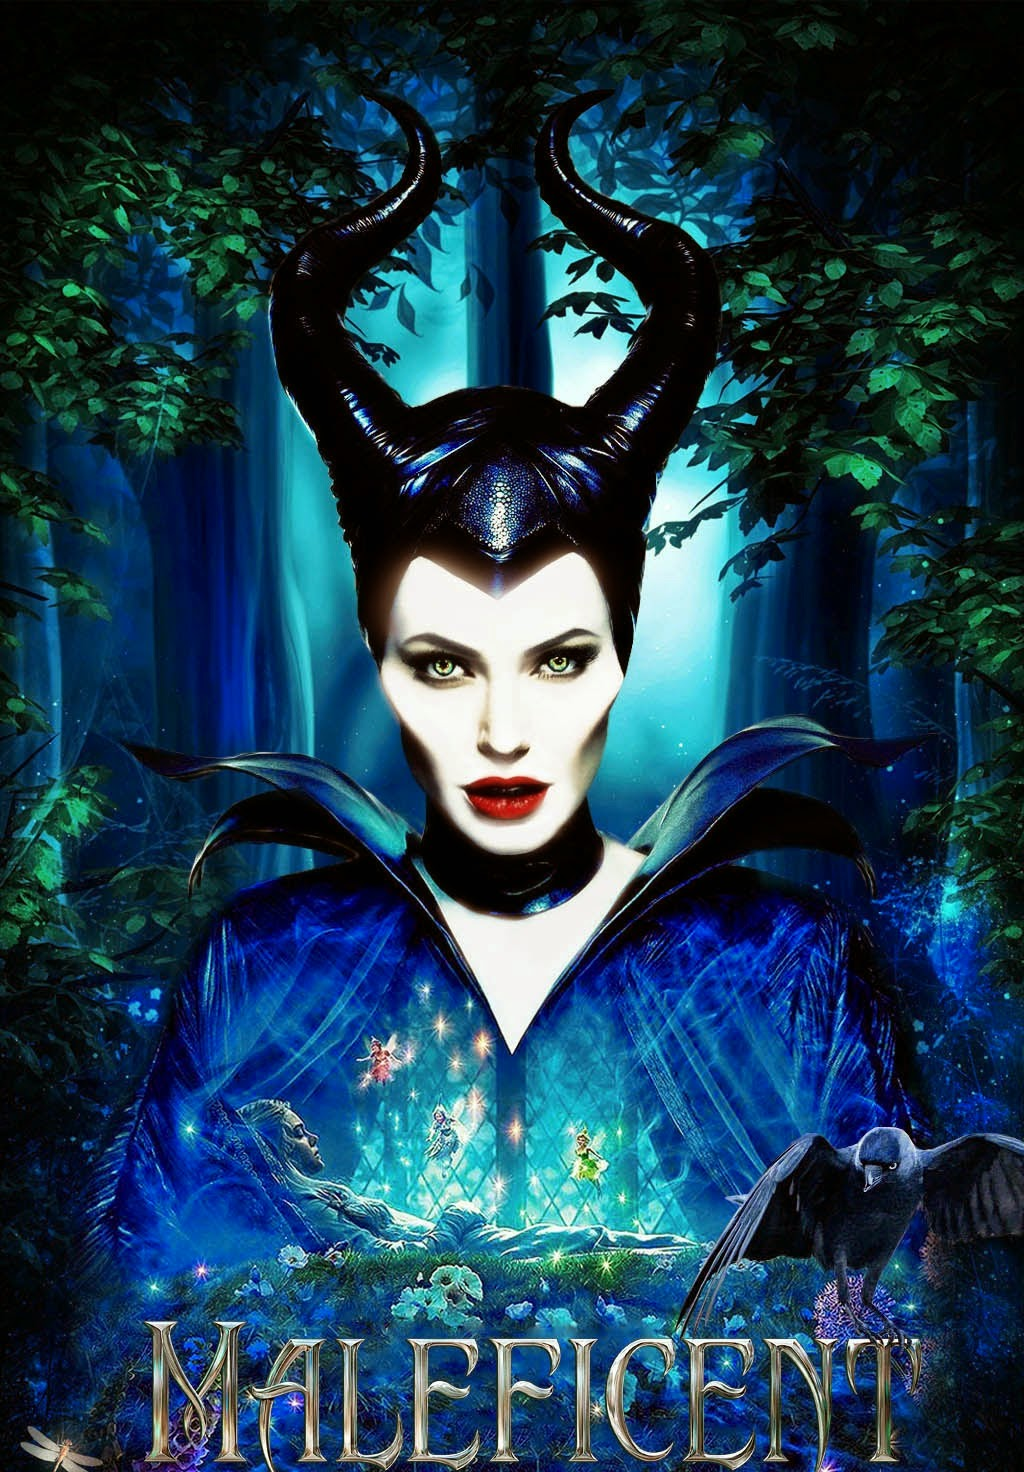 http://books-tea-pie.blogspot.fr/2014/07/malefique-maleficent-un-film-de-robert.html#more